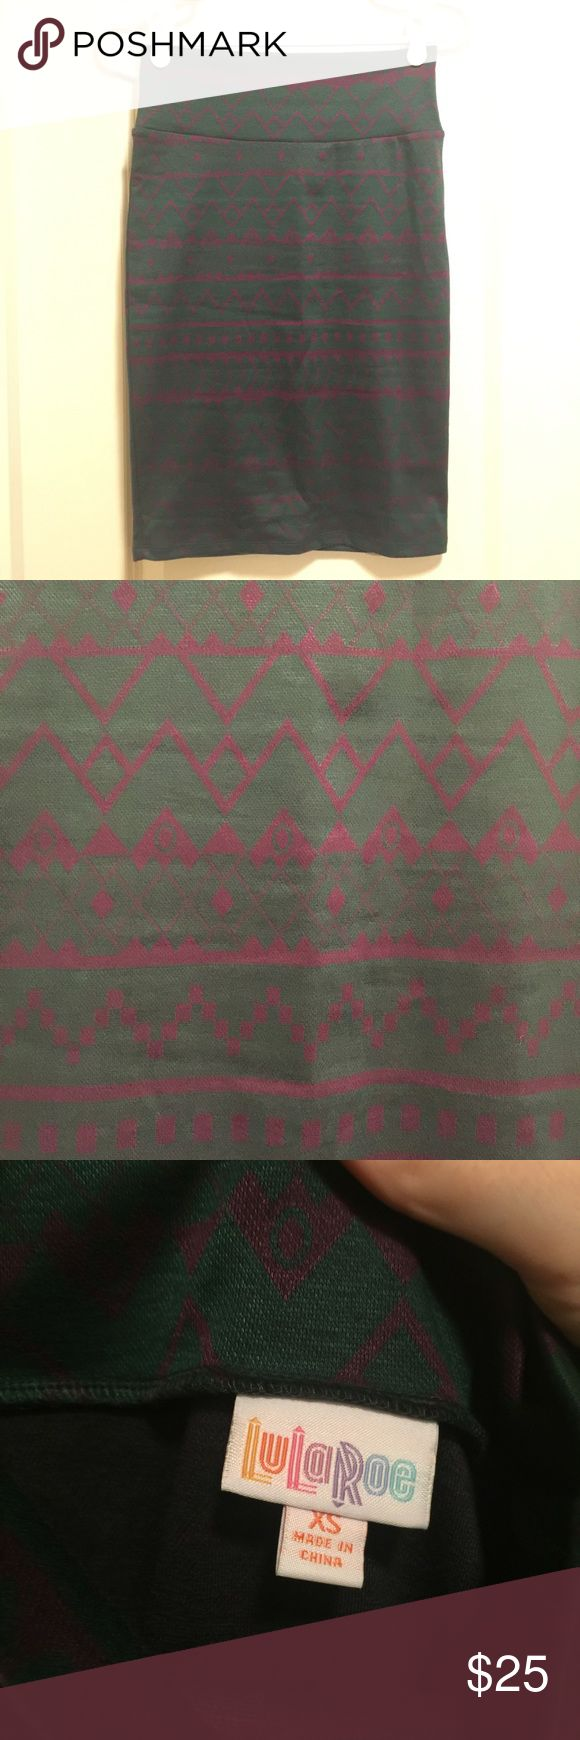 NWOT Jacquard Fabric XS LLR Cassie New without tags, Lularoe Cassie skirt. Jacquard fabric, green and dark purple. Took tags off thinking I would wear it, but never did. Size XS. Wanted to mimic one of the Lularoe convention model outfits. Smoke/pet free home. LuLaRoe Skirts Pencil